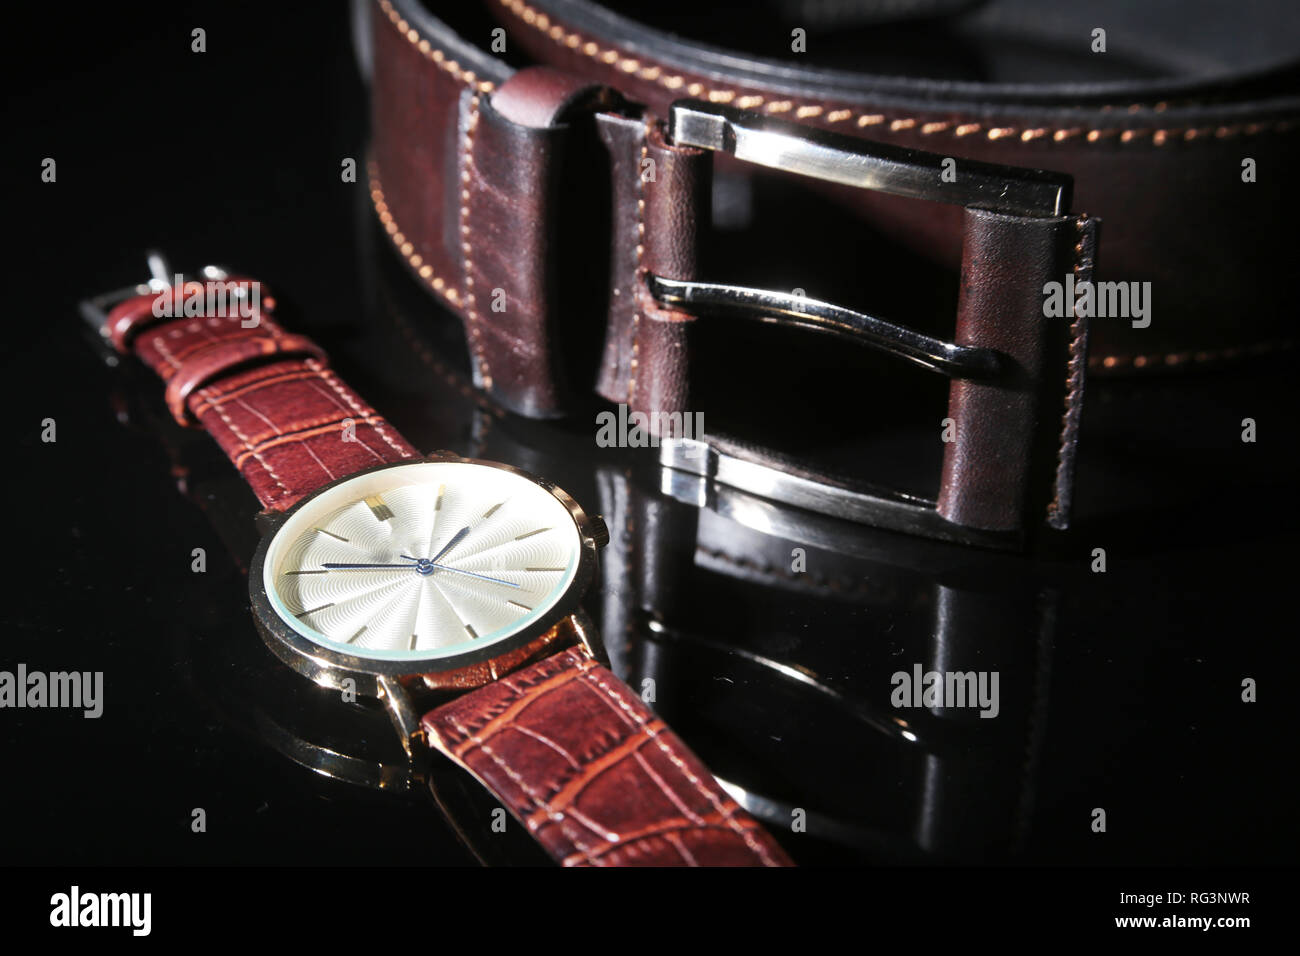 Men's accessories for business and rekreation. Leather belt, Watch, notepad and pen on black mirror background. Top view composition - Stock Image